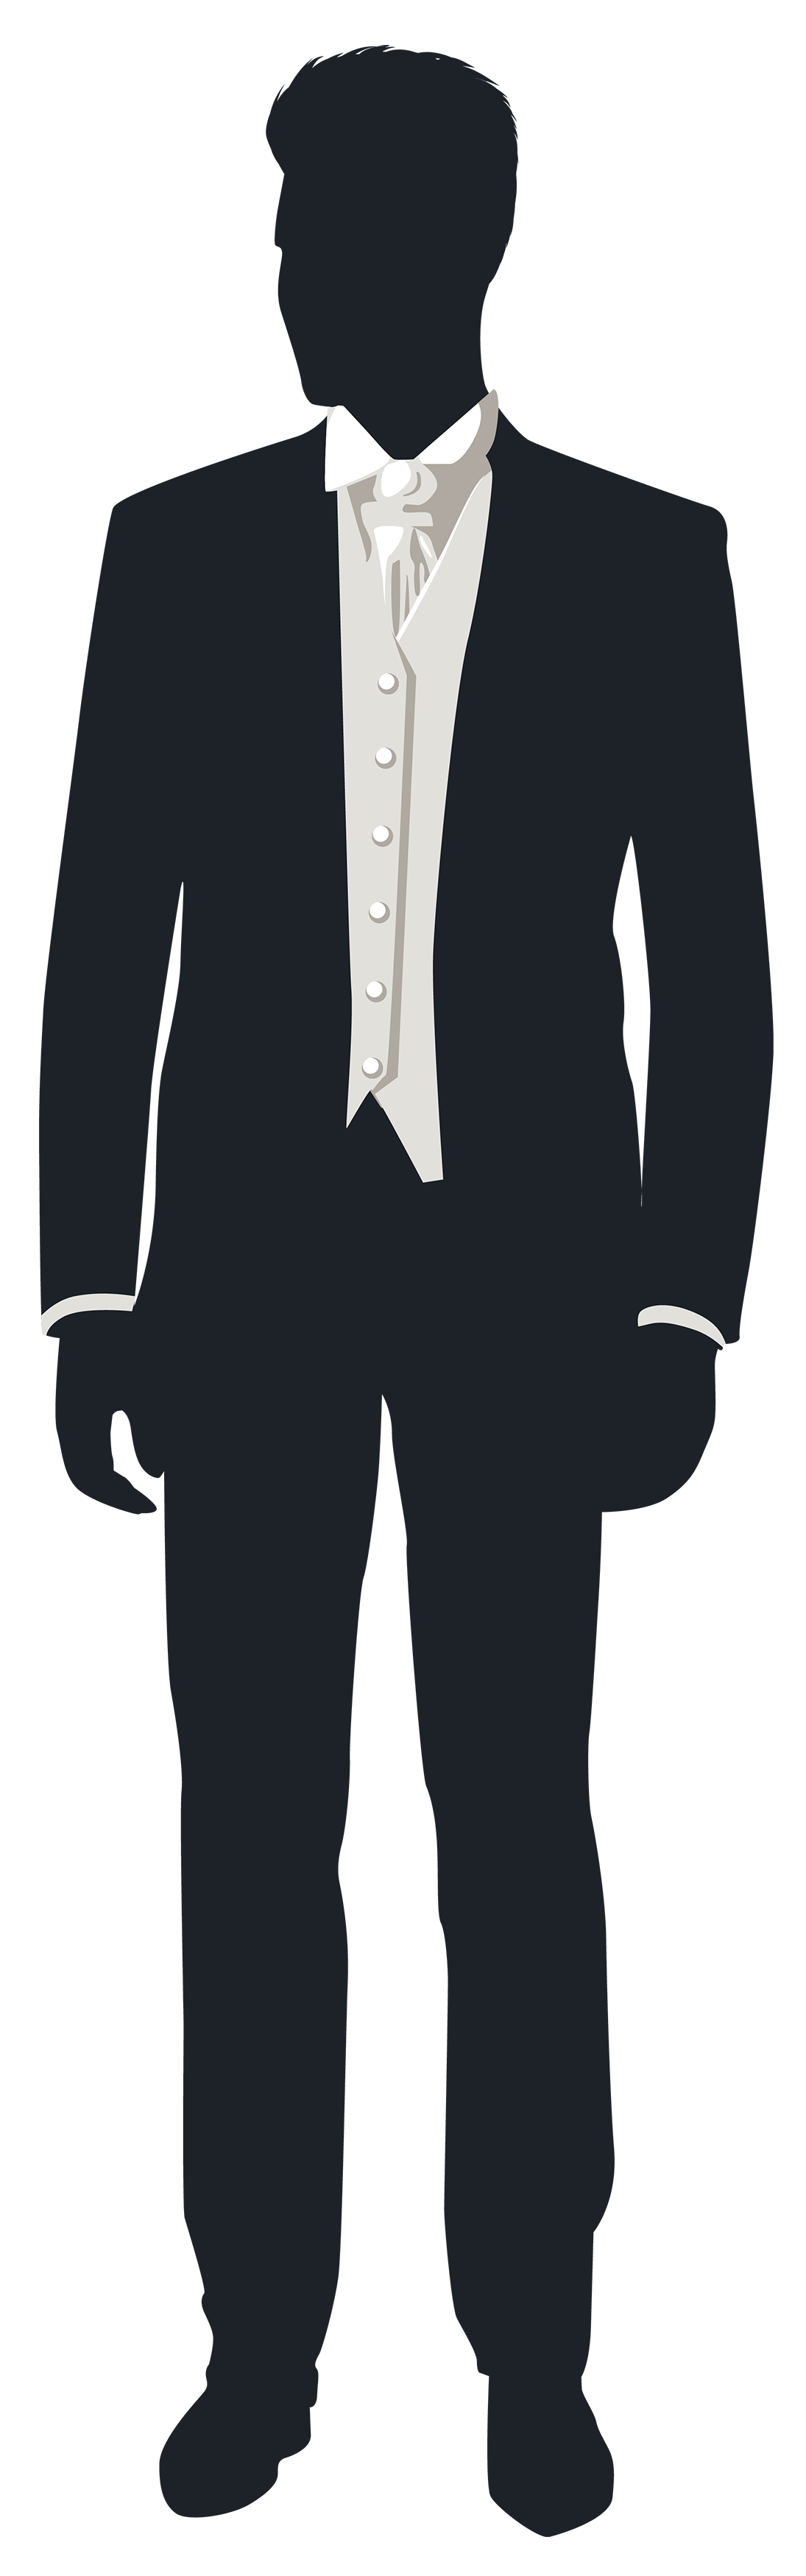 In png web icons. Groom clipart male model